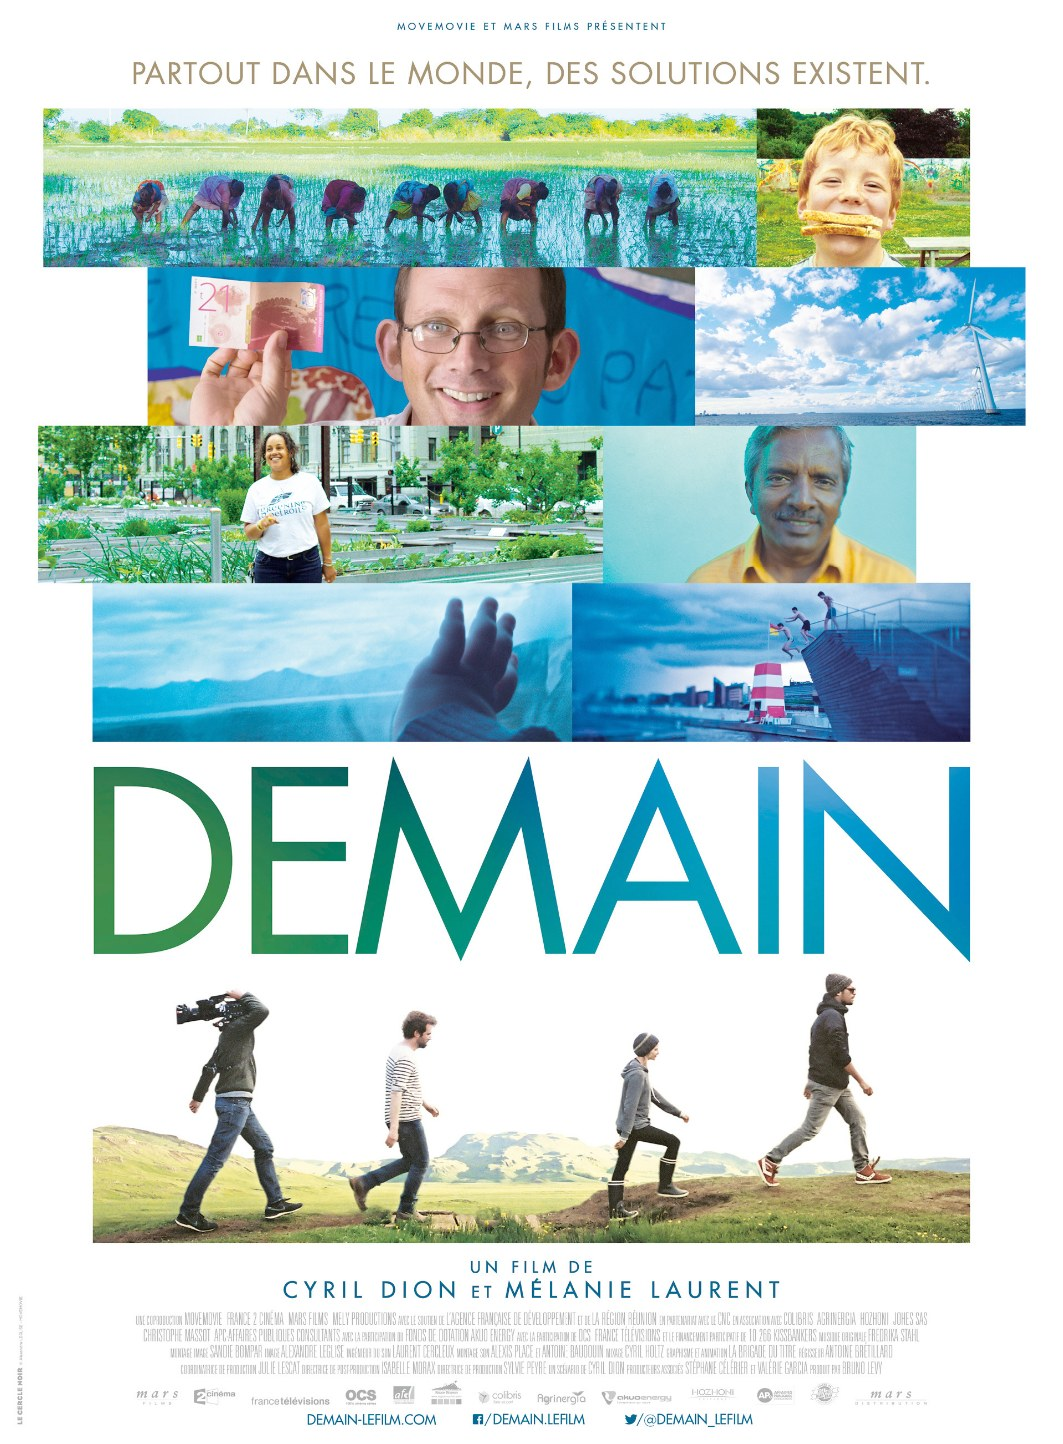 Demain Mars Distribution Affiche